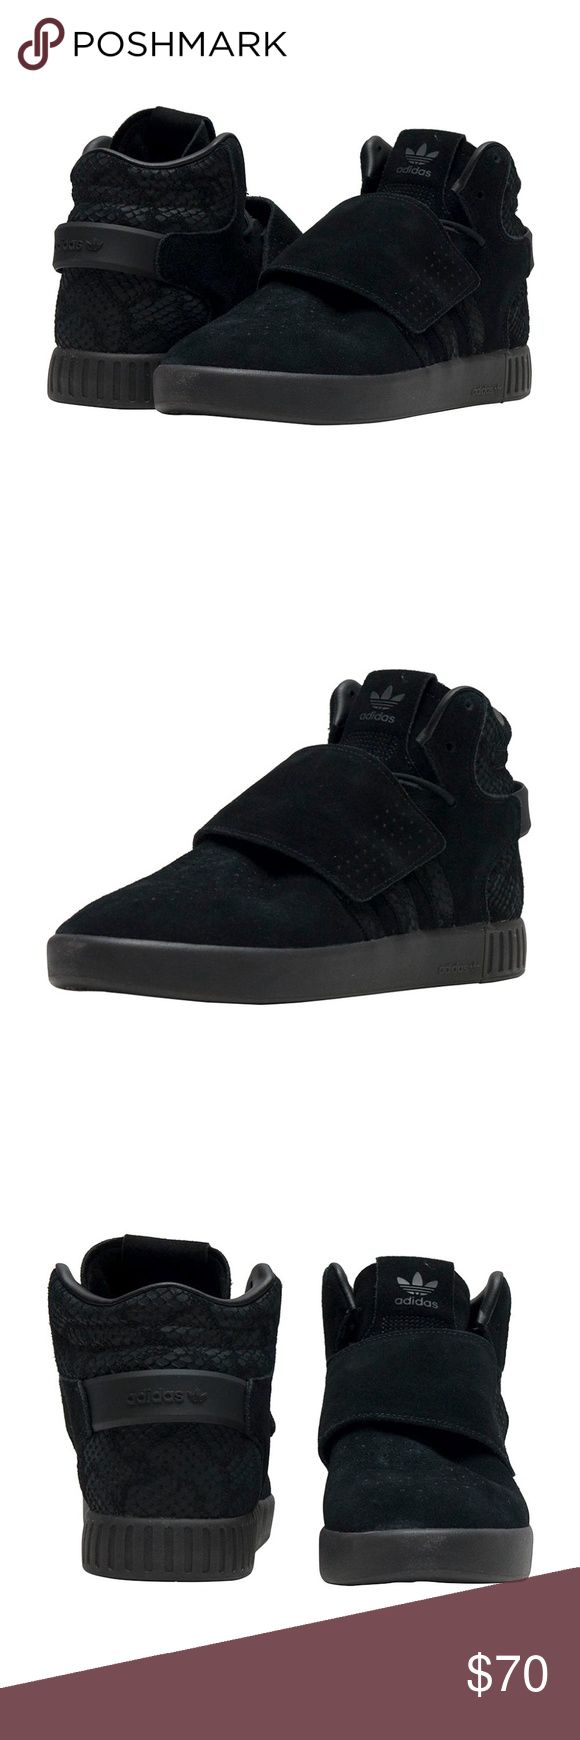 New Adidas Tubular Invader Strap J Sneakers Black New with box Youth Adidas Tubular Invader Strap J in black on black sneakers. Suede upper with suede and embossed suede 3-Stripes (Looks like snake skin)  Comfortable textile lining.   Unisex Grade school sizes.   5 star rated seller & Poshmark ambassador.  Check out our other Adidas Tubular Strap listing. Various colors and sizes for men, women, and children. adidas Shoes Sneakers